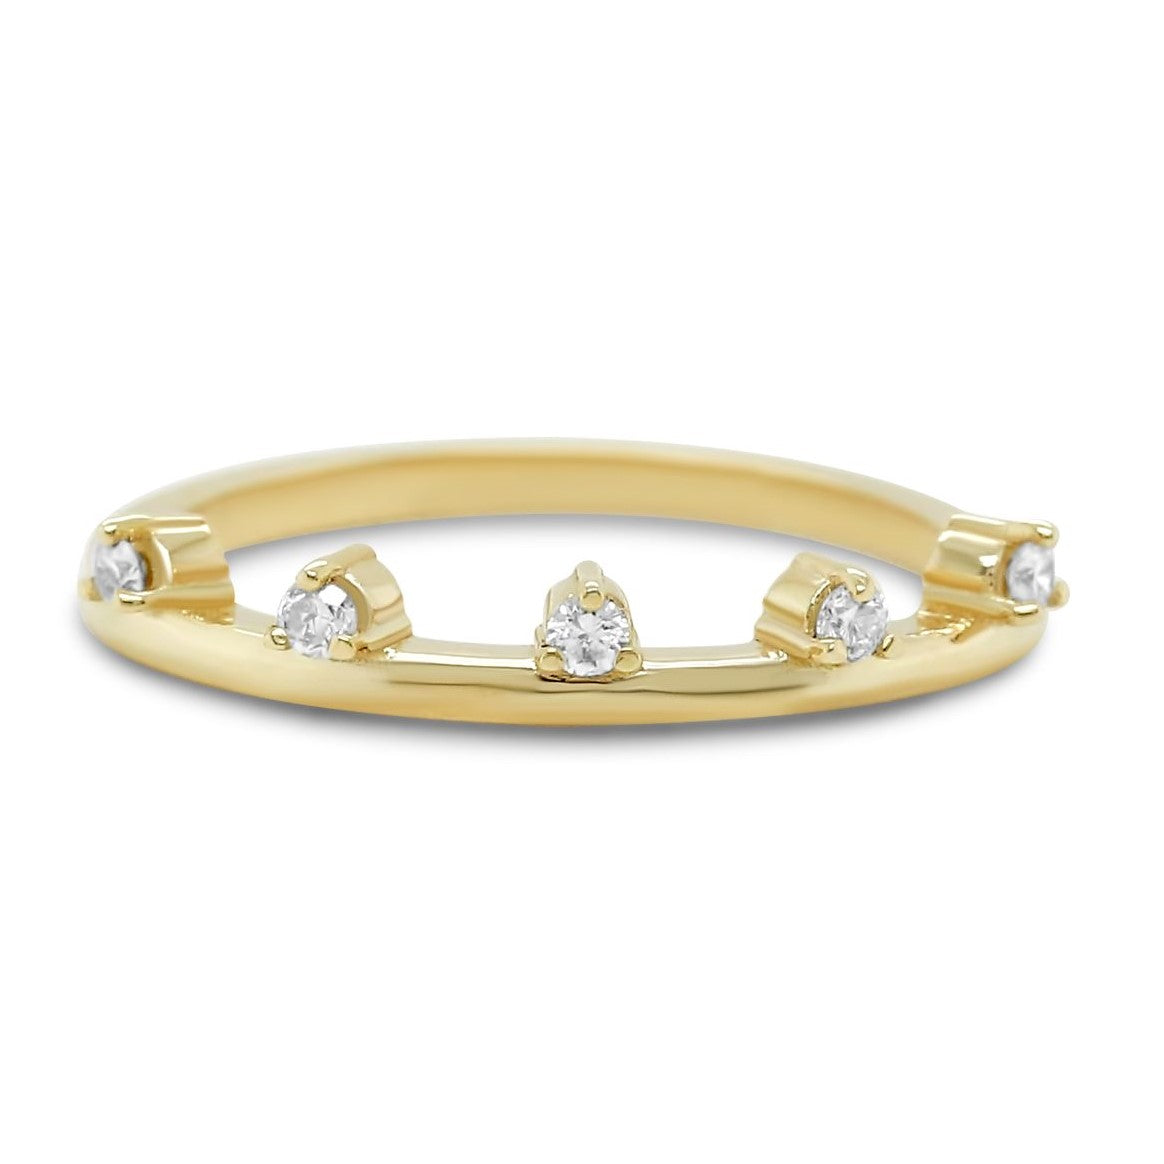 14k yellow, rose or white gold three prong diamond wedding band